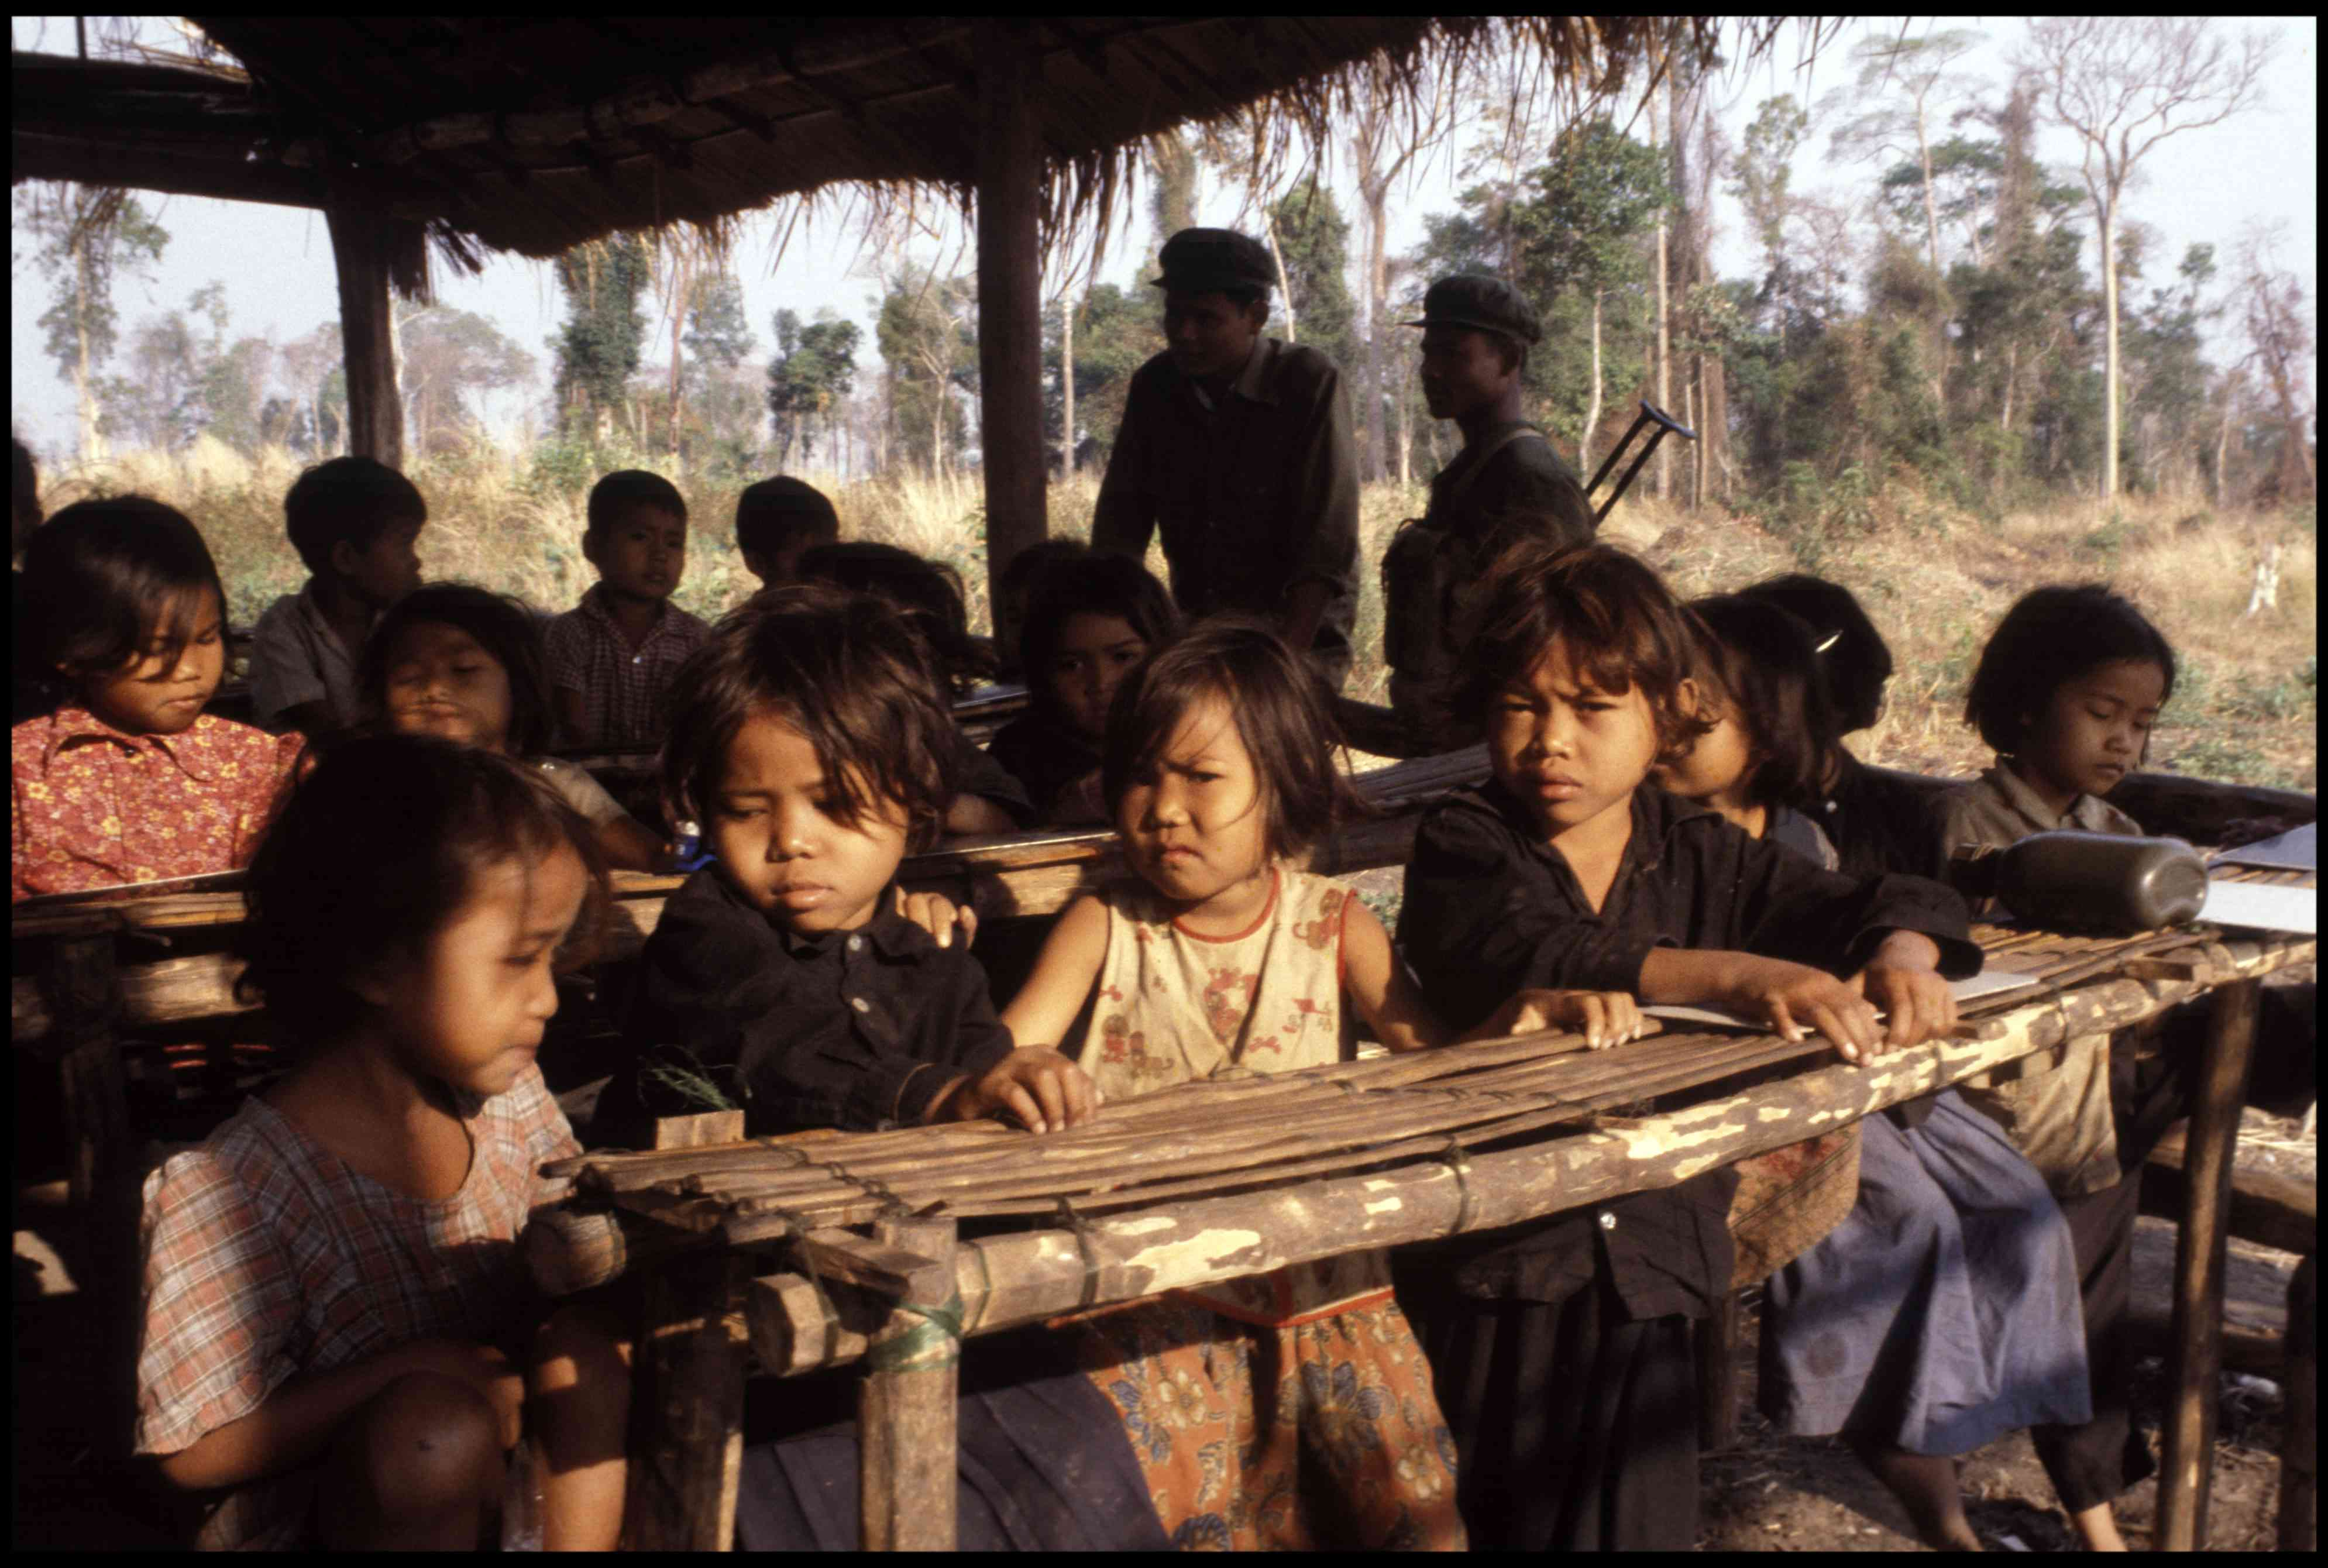 Children of Khmer Rouge guerrillas attend a make-shift school in western Cambodia, 1981